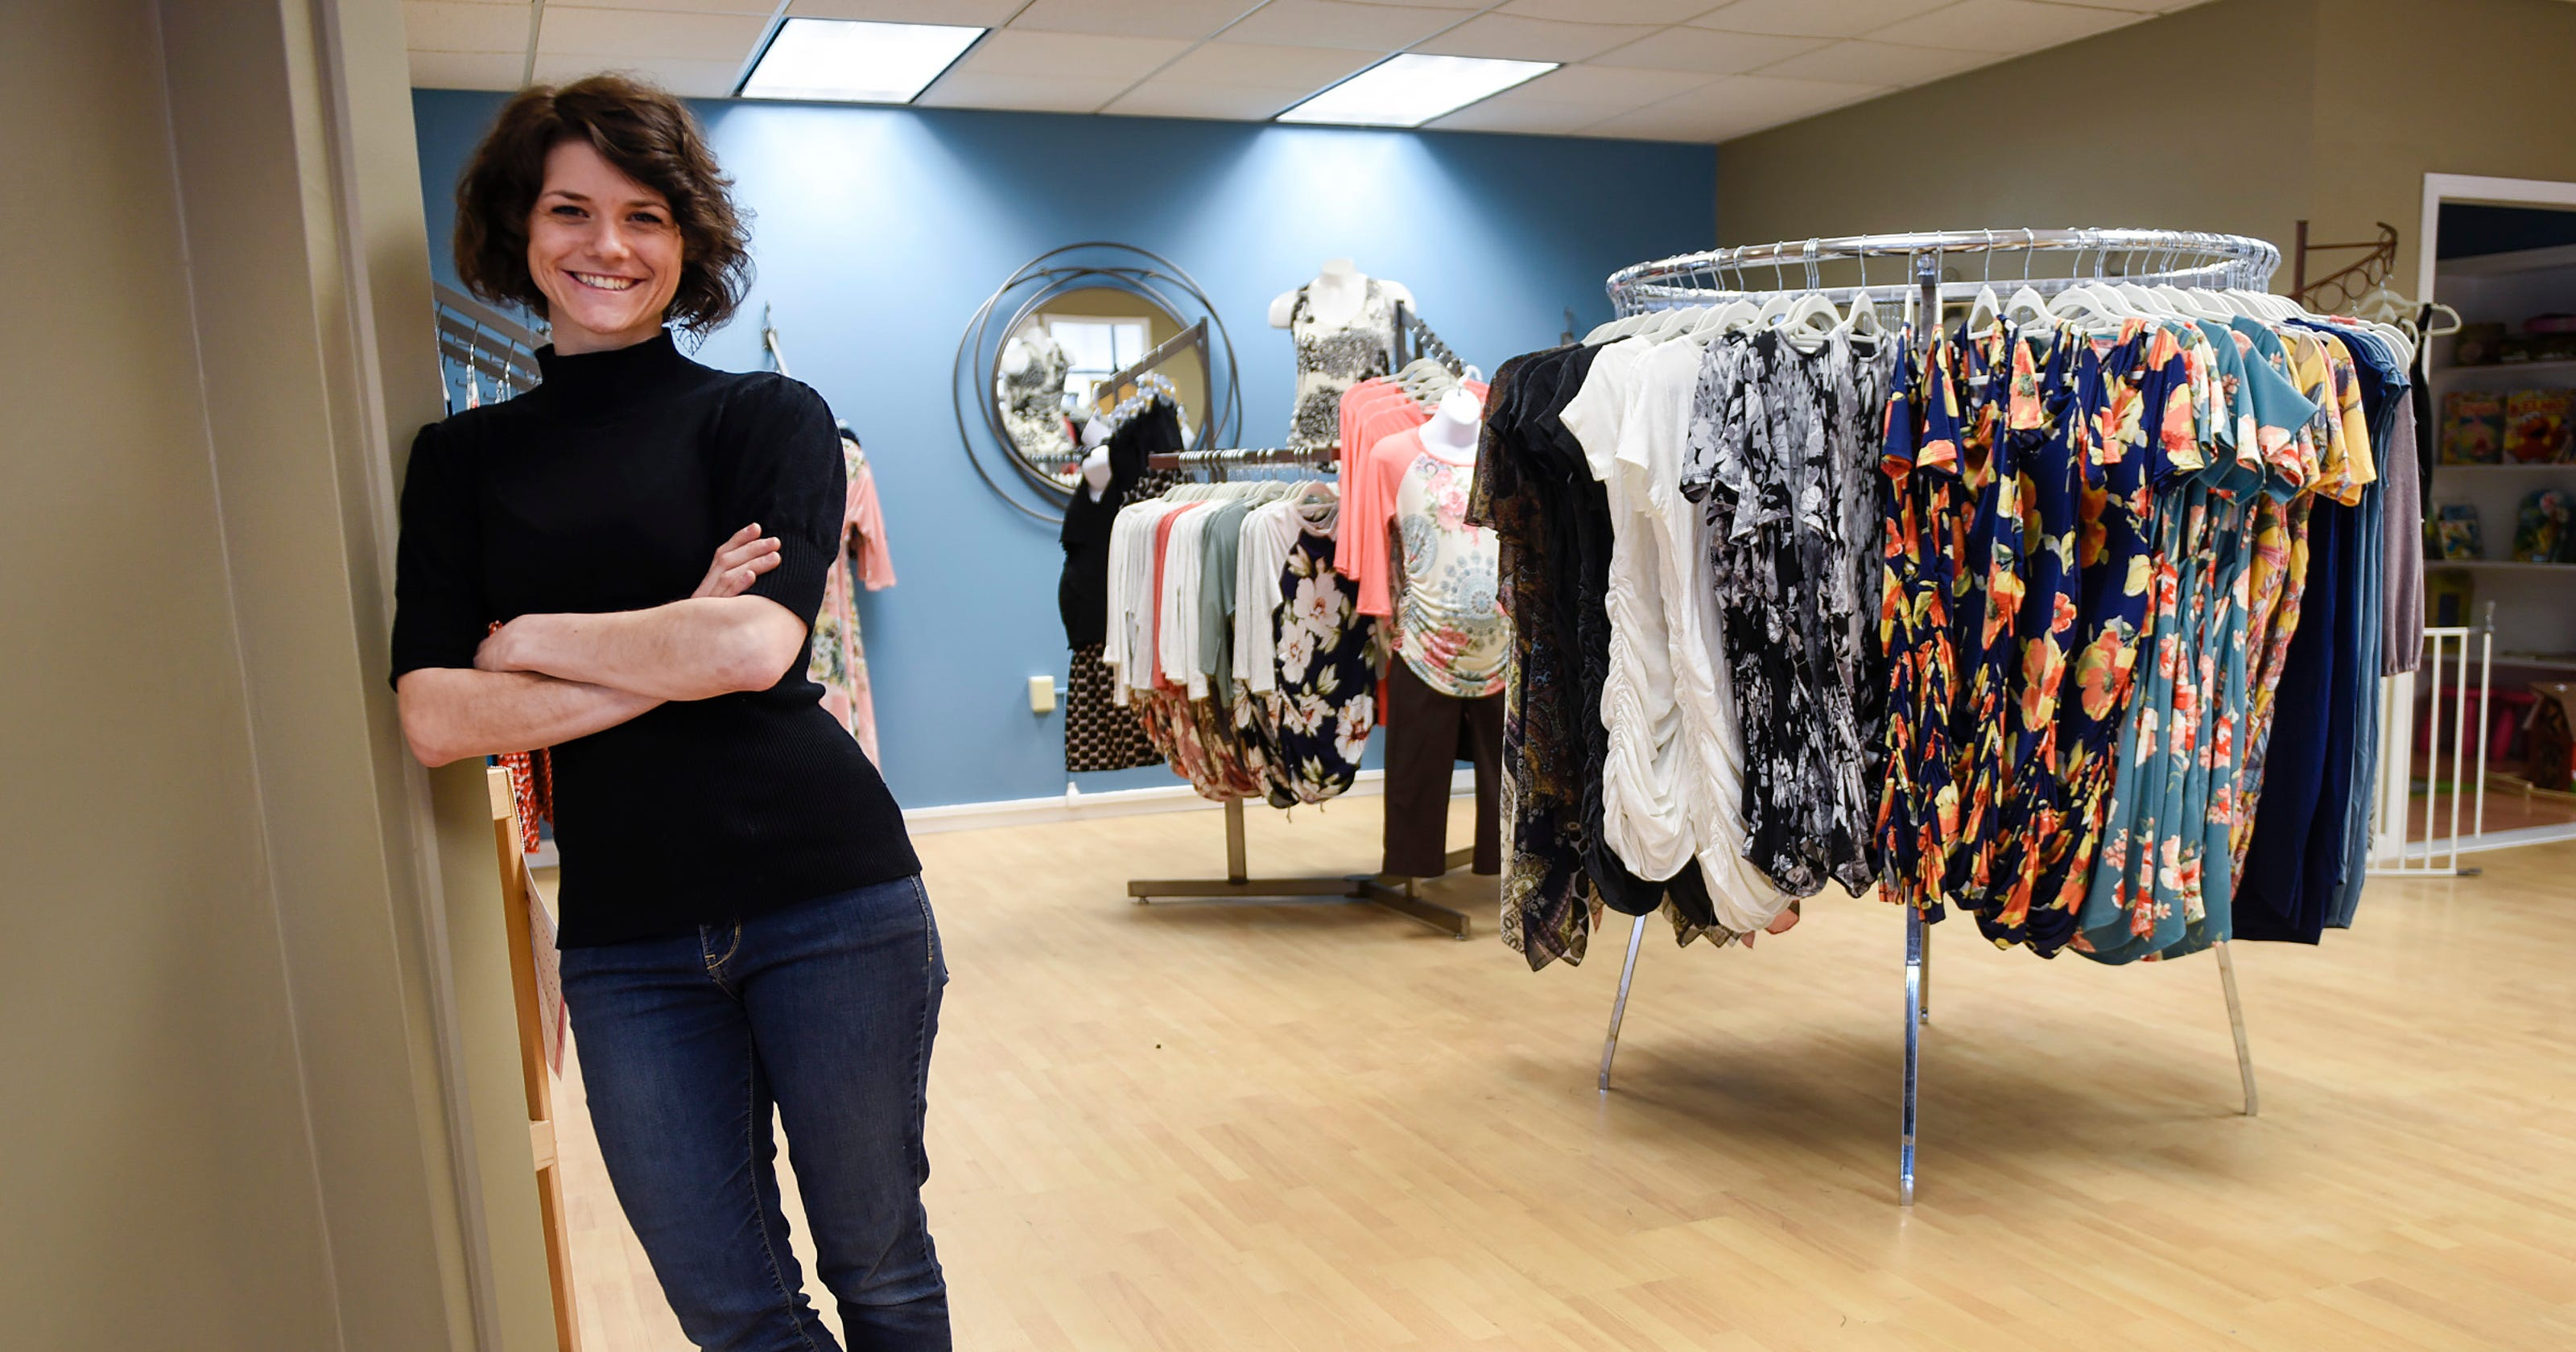 d80f110705c31 New maternity store for moms-to-be opens in St. Cloud